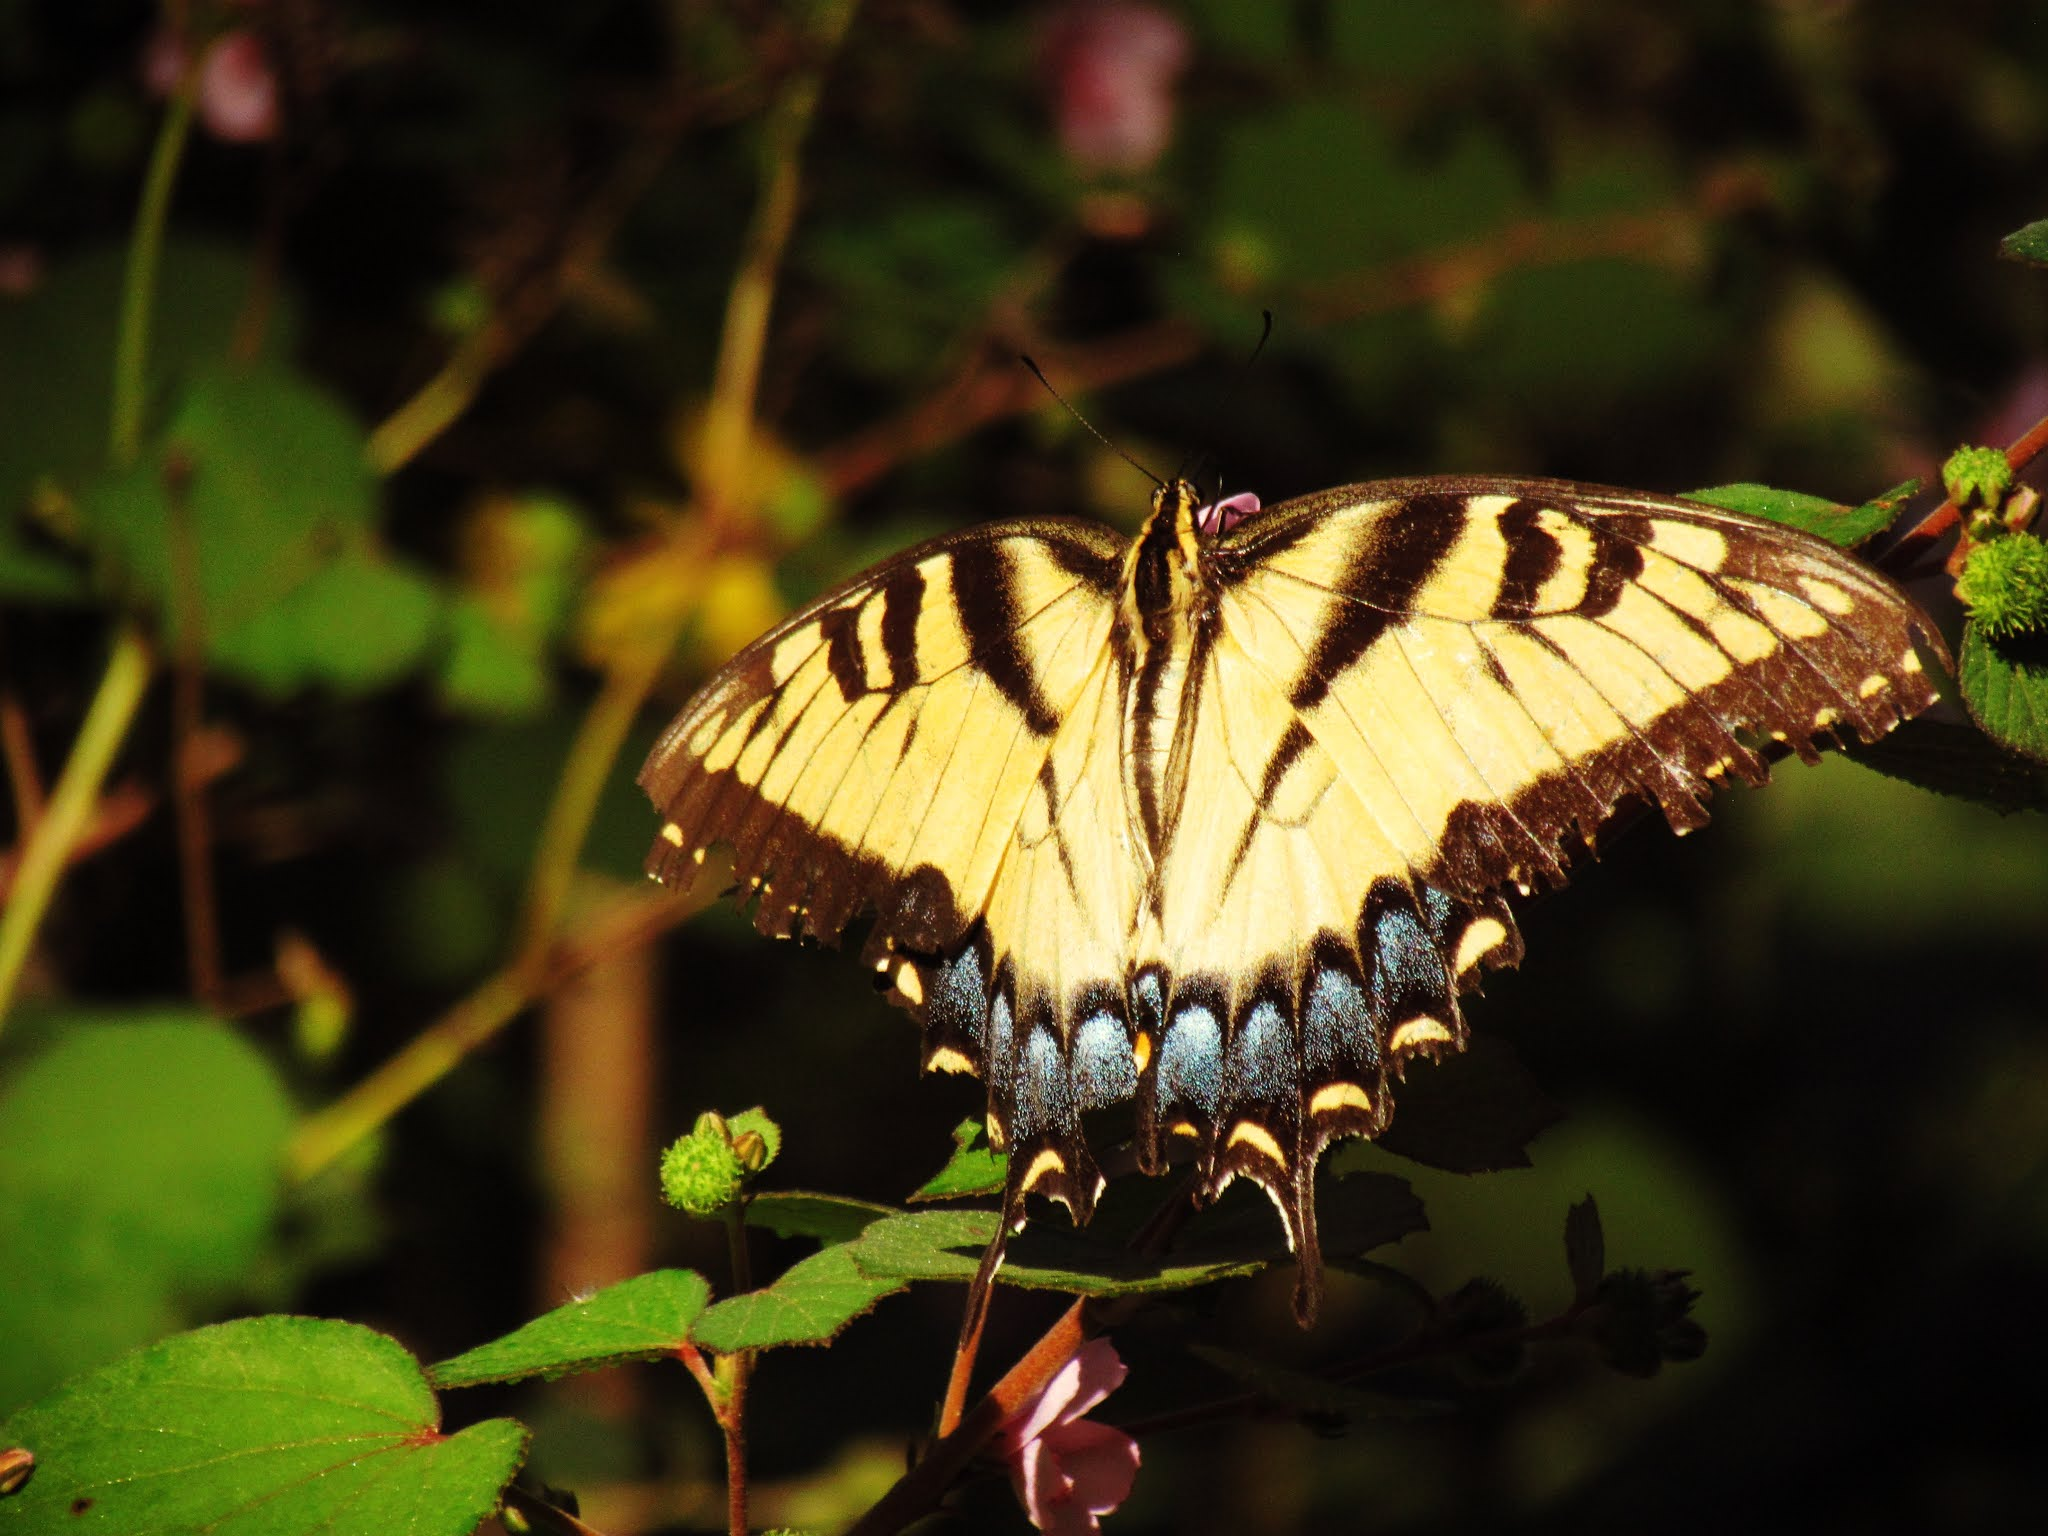 A swallowtail butterfly of the Florida butterfly species variety in a Florida green meadow in the autumn daylight